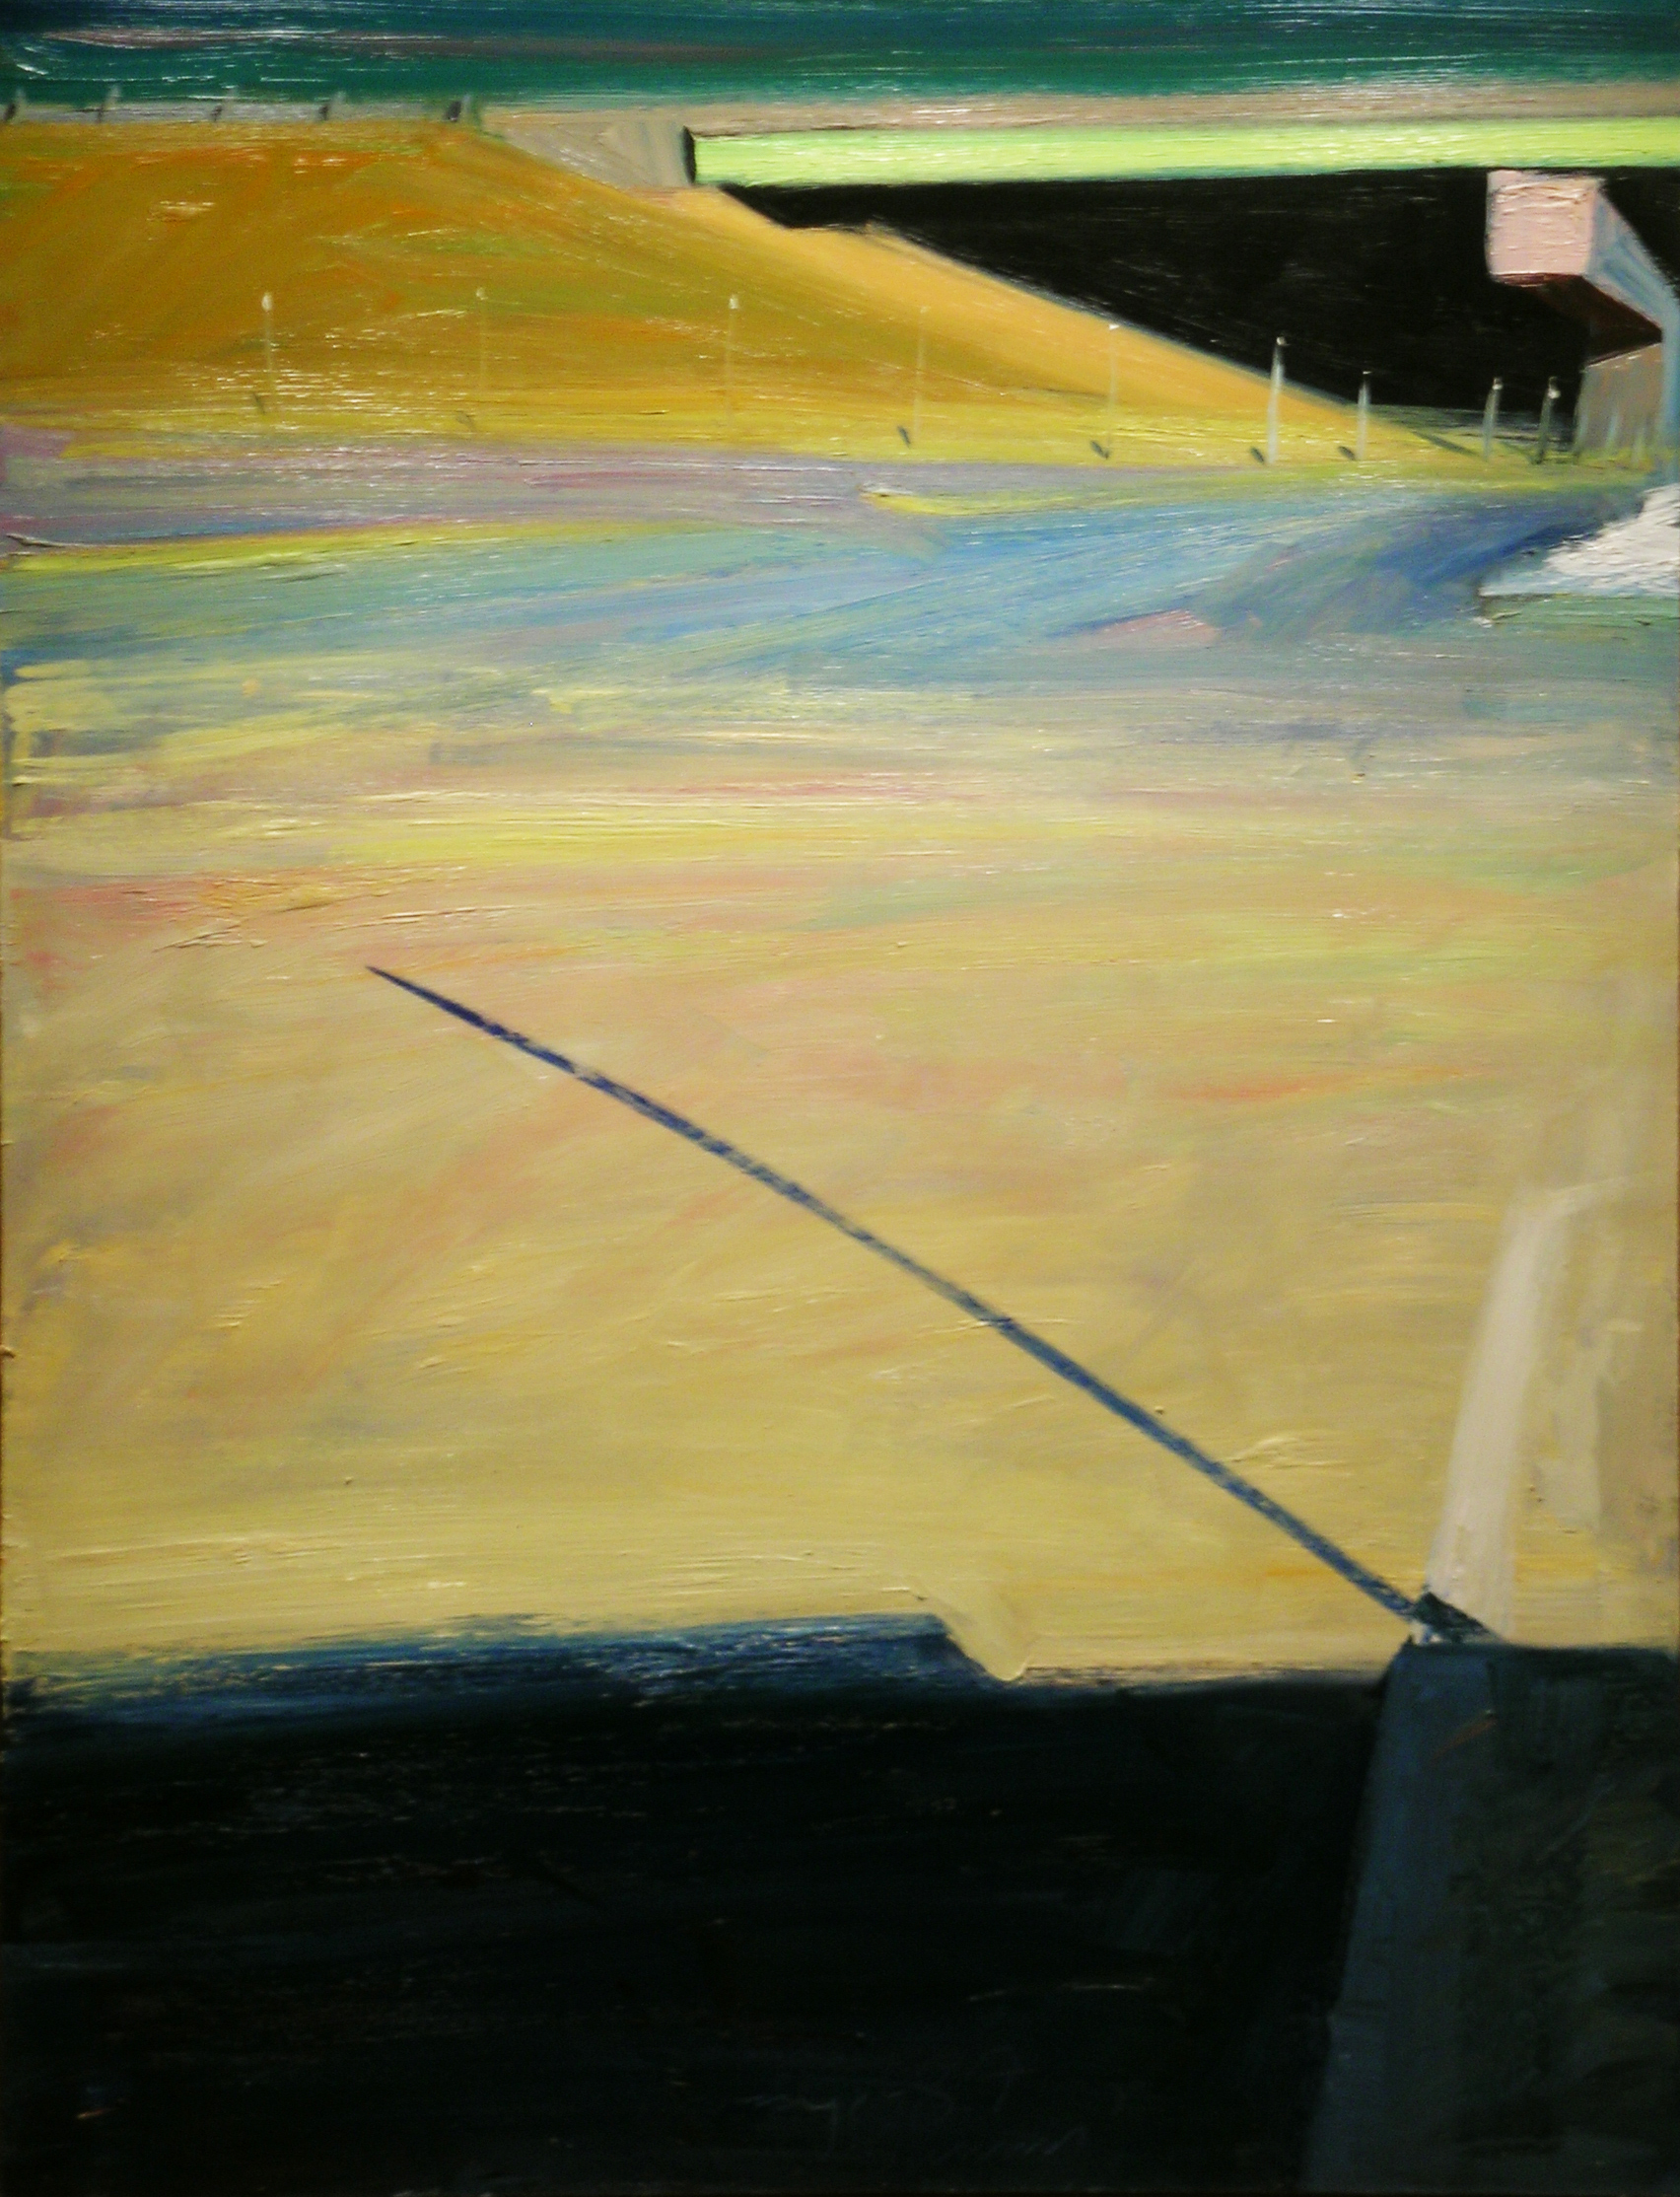 Teanan Bridge Sunny , 1987 oil on canvas, 60 x 46 inches